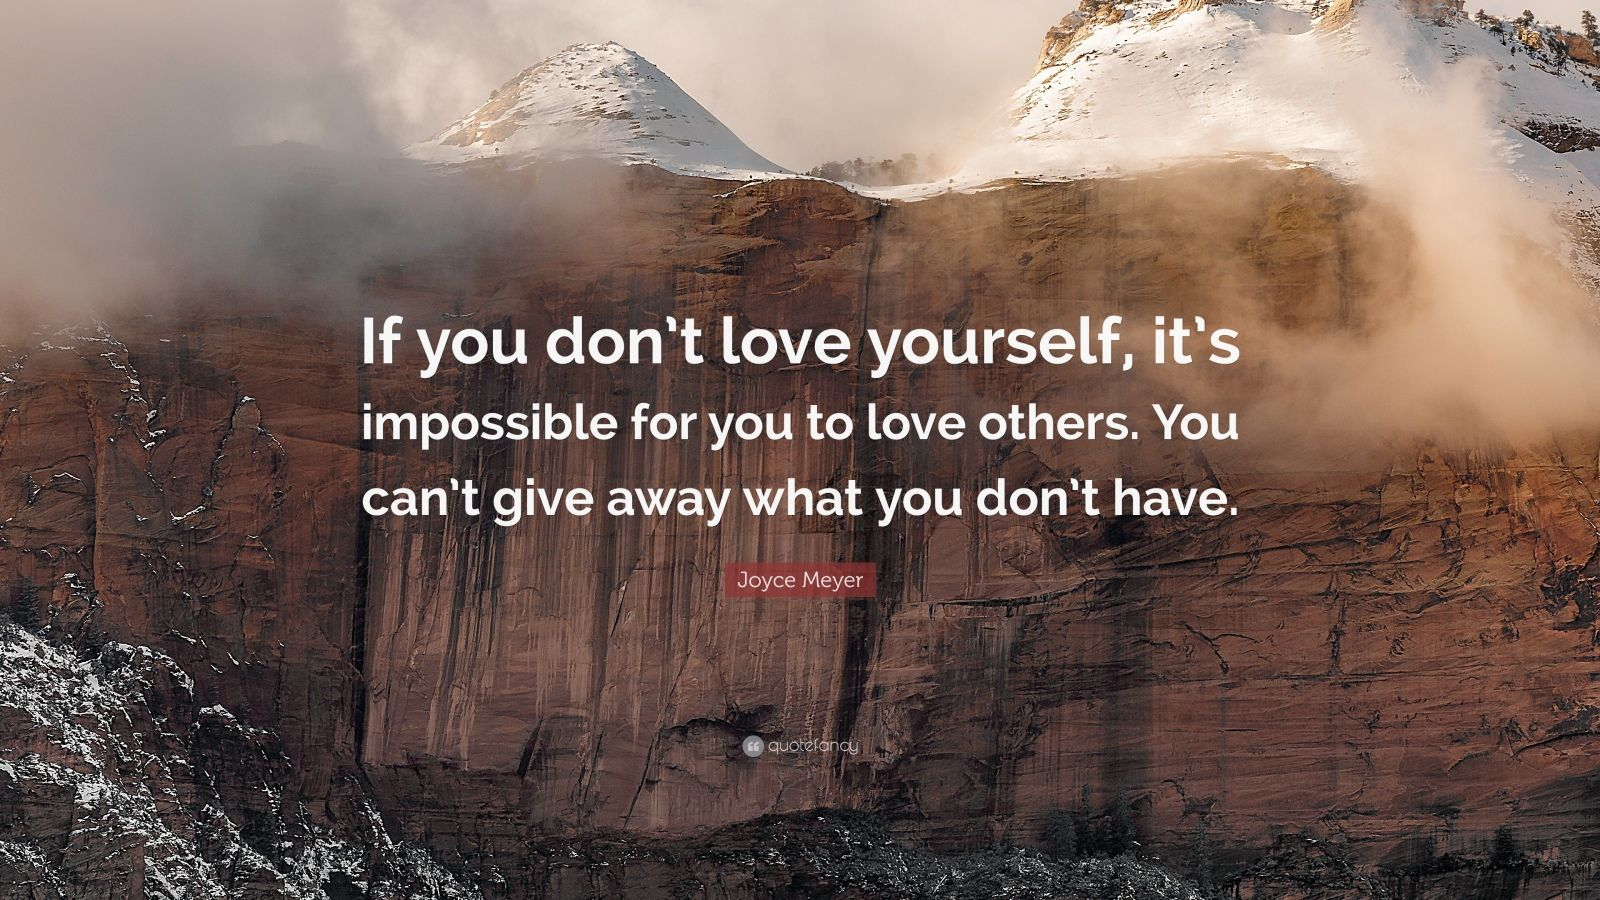 Joyce Meyer Quote: If you dont love yourself, its impossible for you to love others. You can